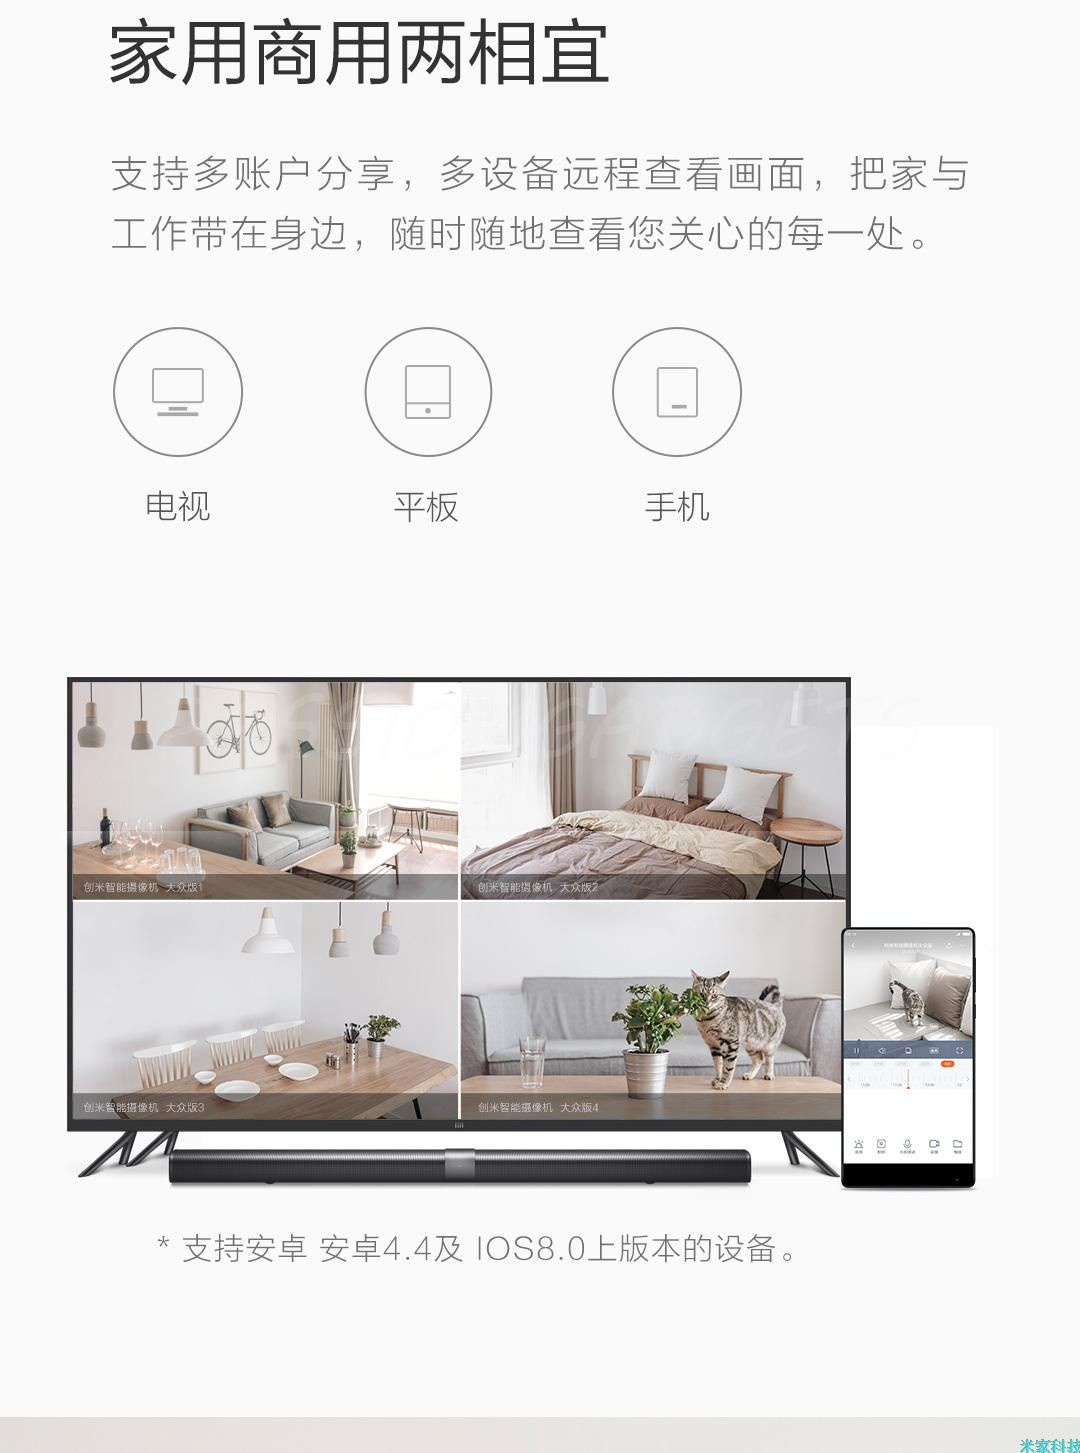 Buy FREE GIFT! XIAOMi Mijia XiaoFang DaFang Smart IP Camera Baby Monitor  CCTV / Night Vision 1080P Deals for only S$59 9 instead of S$0